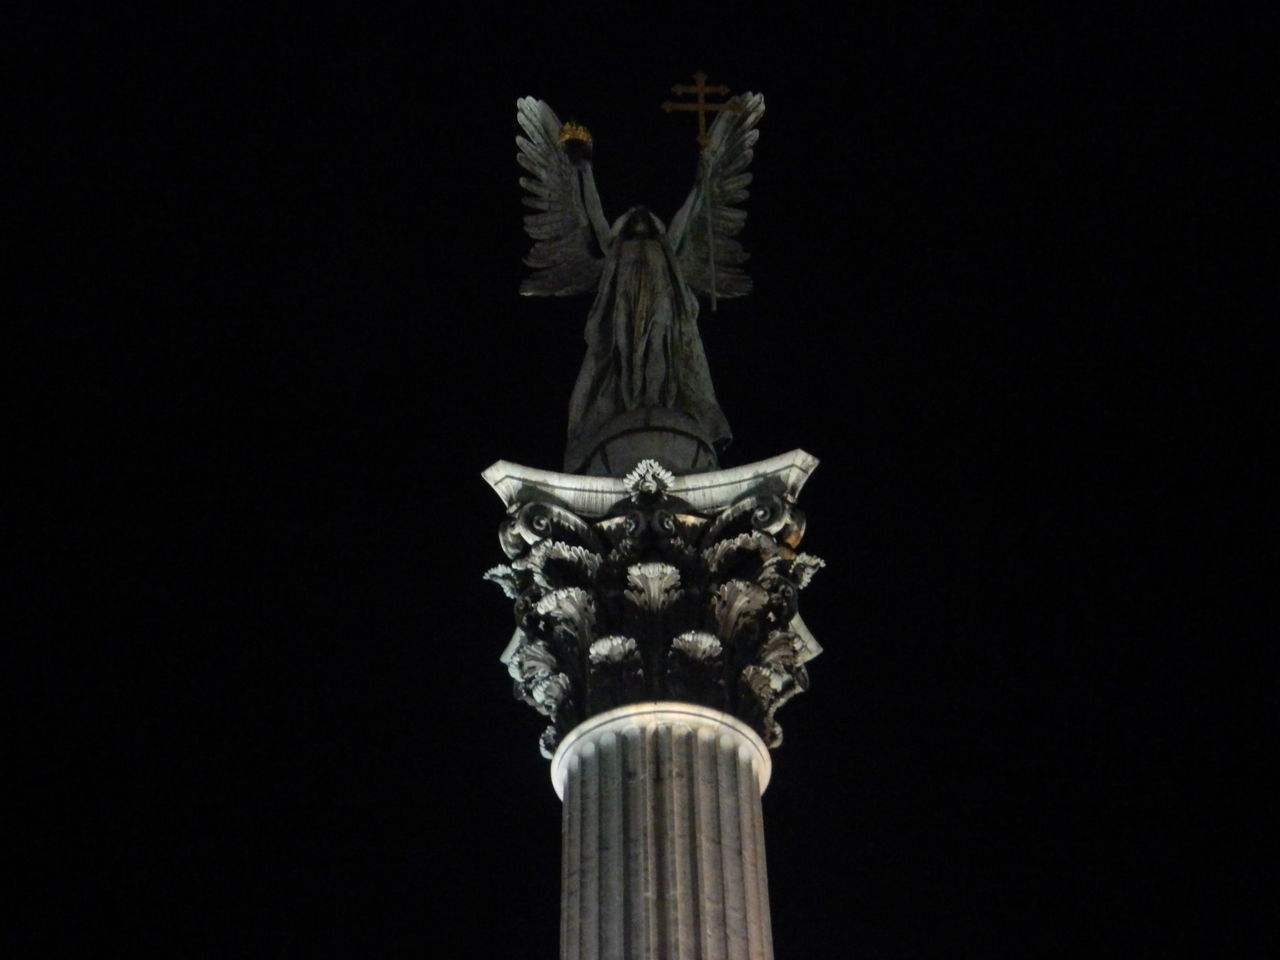 statue, sculpture, no people, night, low angle view, outdoors, black background, architecture, sky